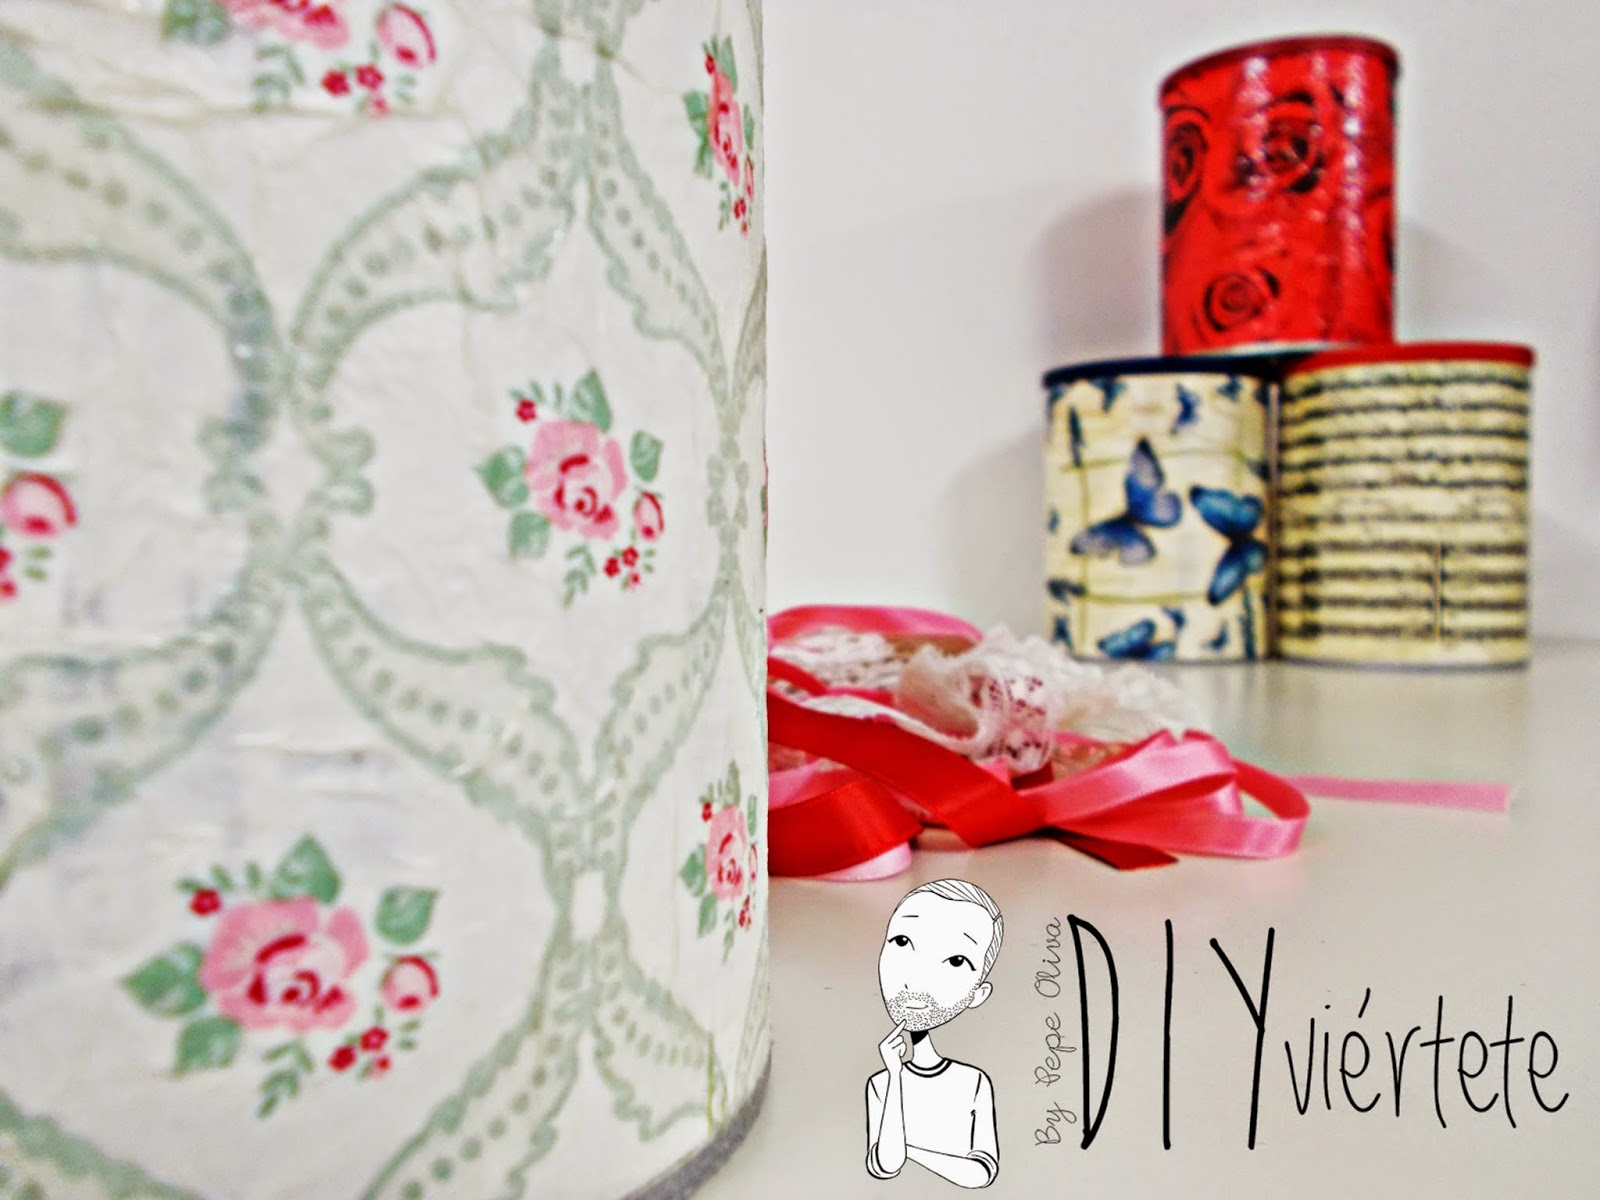 DIY-botes-decoupage-servilletas-cola blanca-ideas regalo-reciclar-reutilizar (1)3